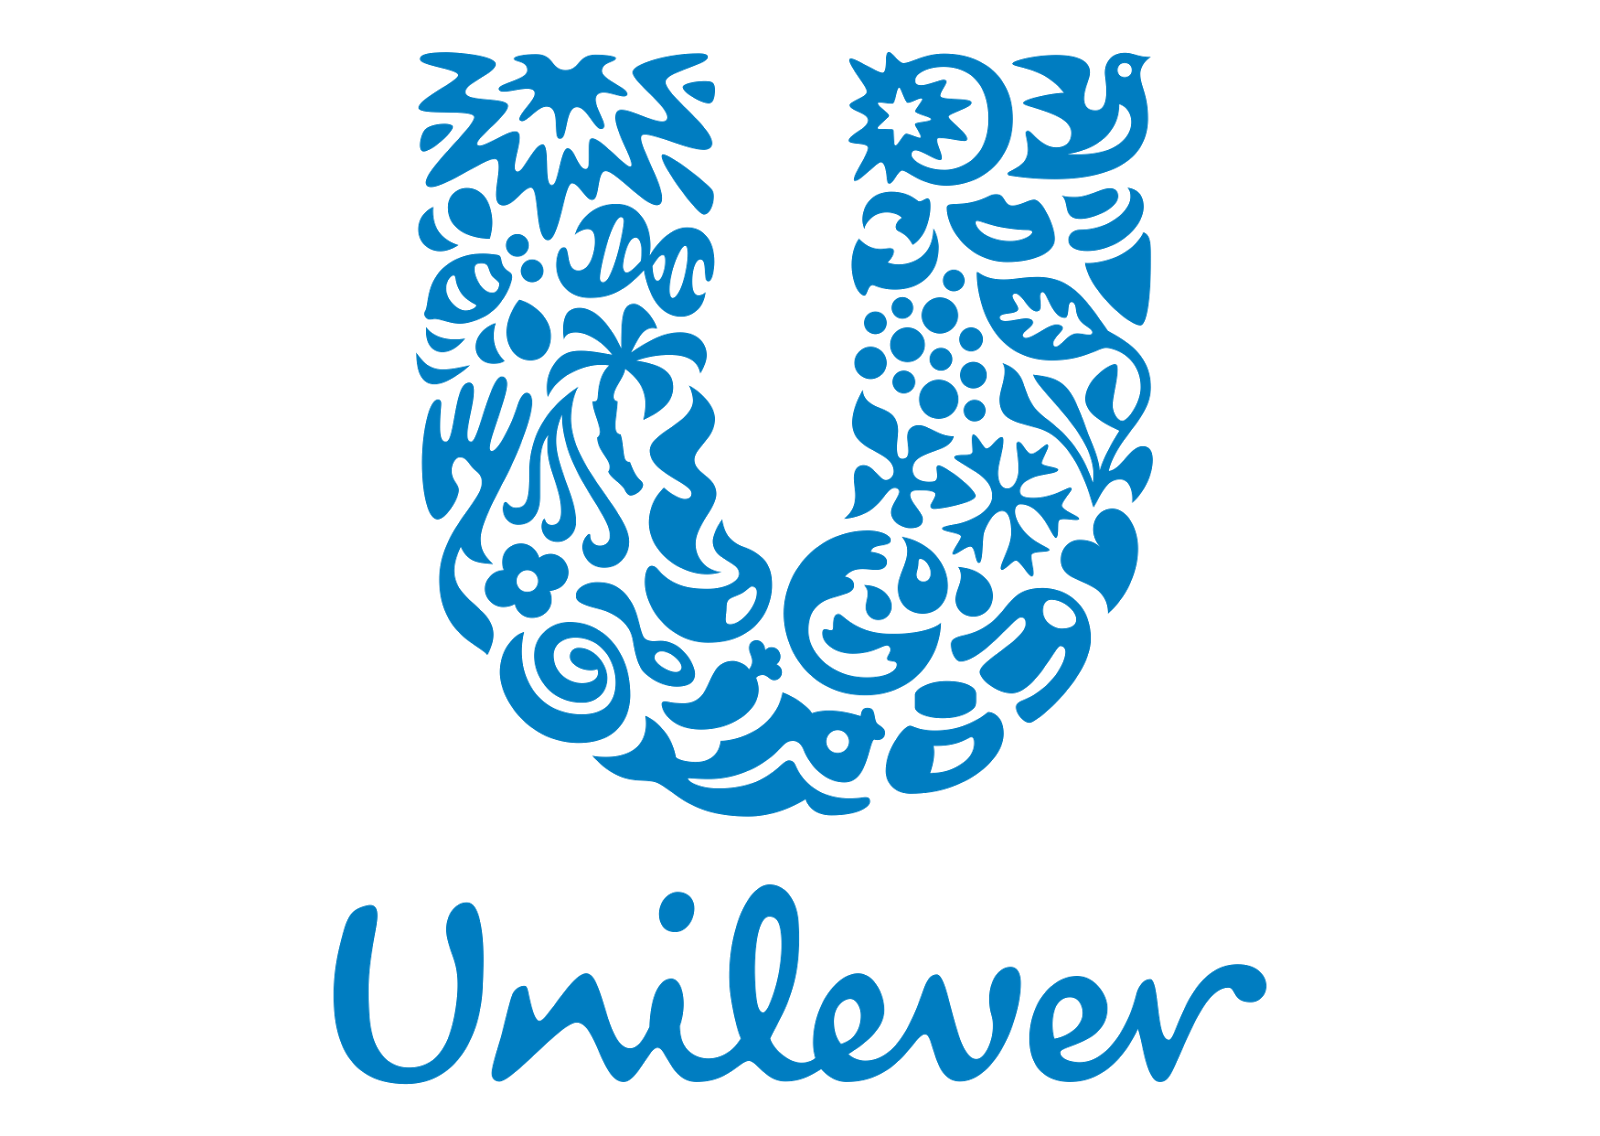 kisspng-unilever-logo-company-variety-vector-5adfcacd016036.7562277915246158850057